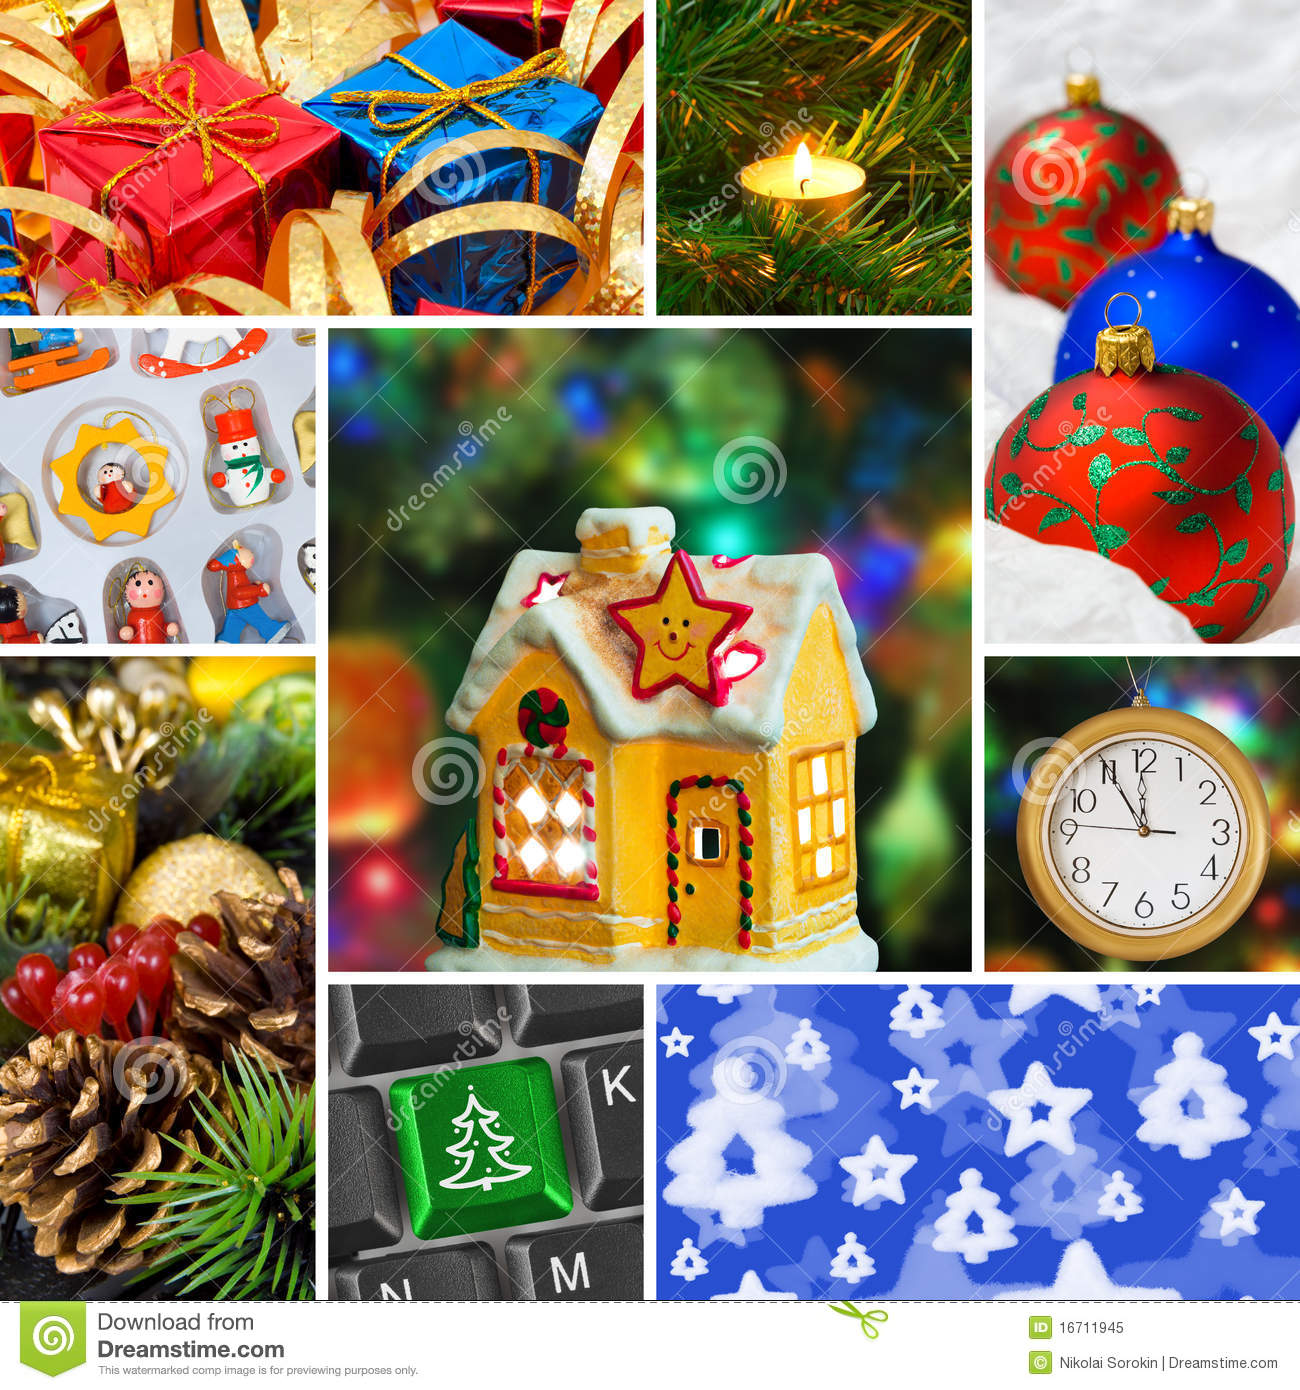 Weihnachtsbilder Download.Collage Of Christmas Images Stock Image Image Of Ornate Ball